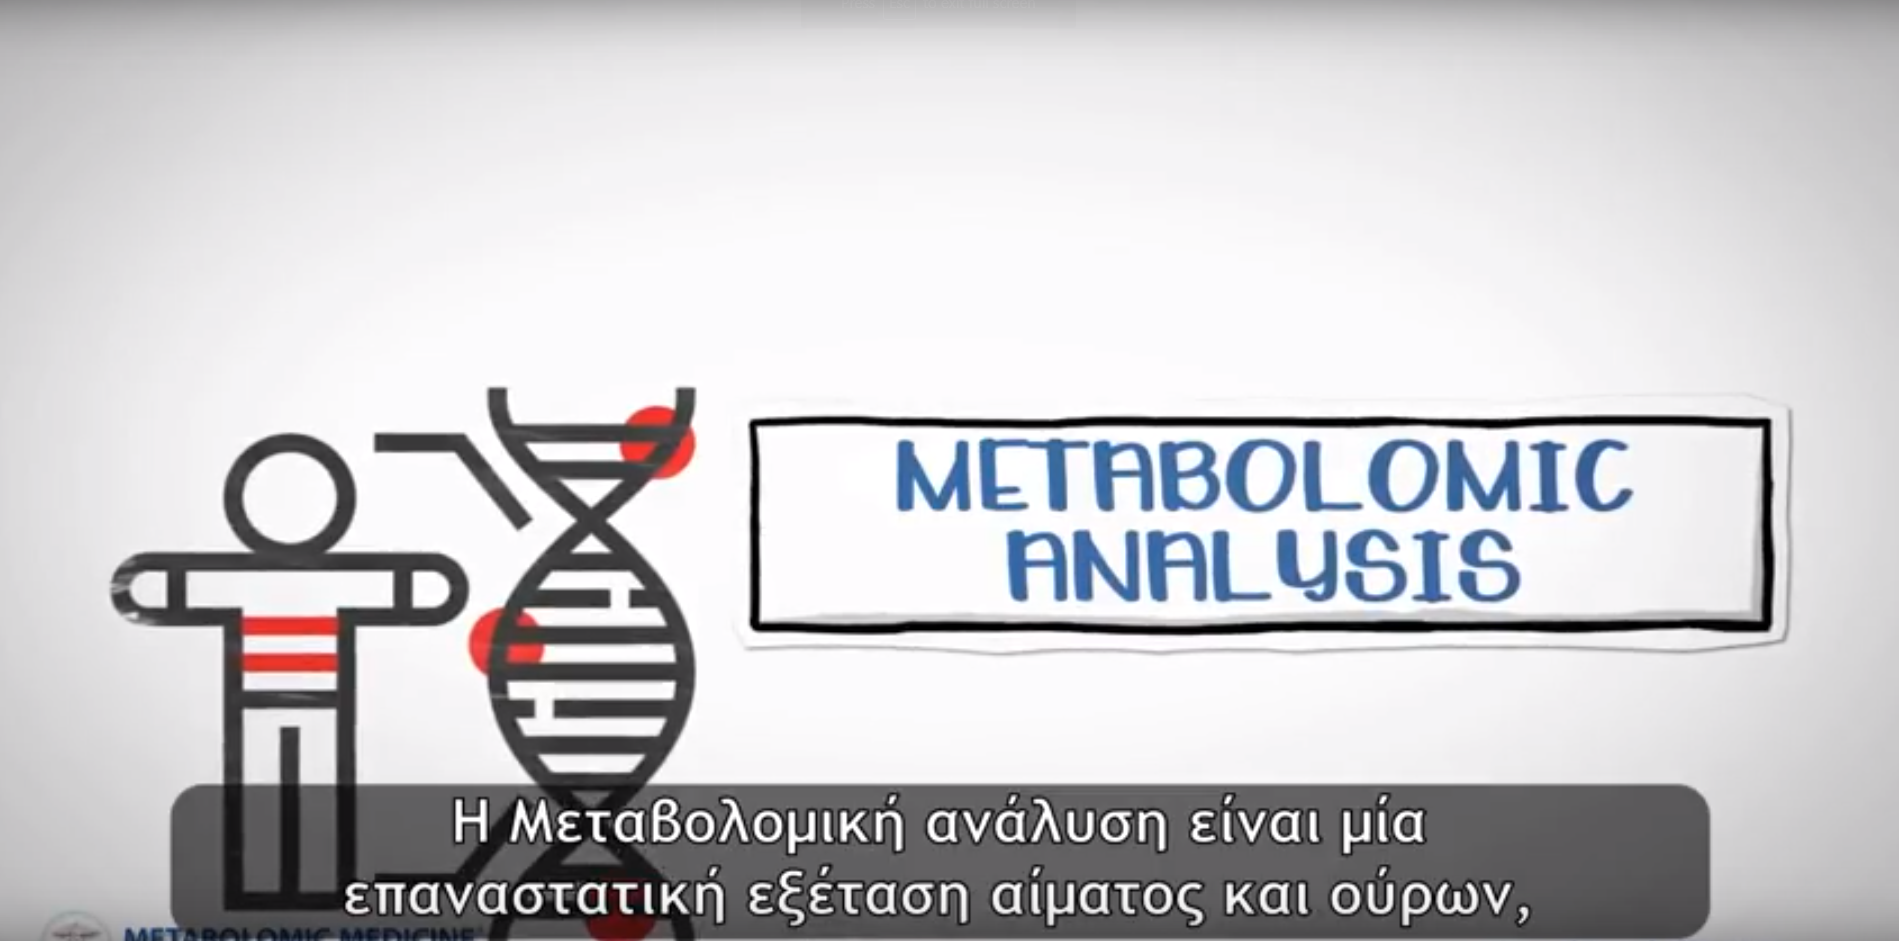 Metabolomic Analysis®